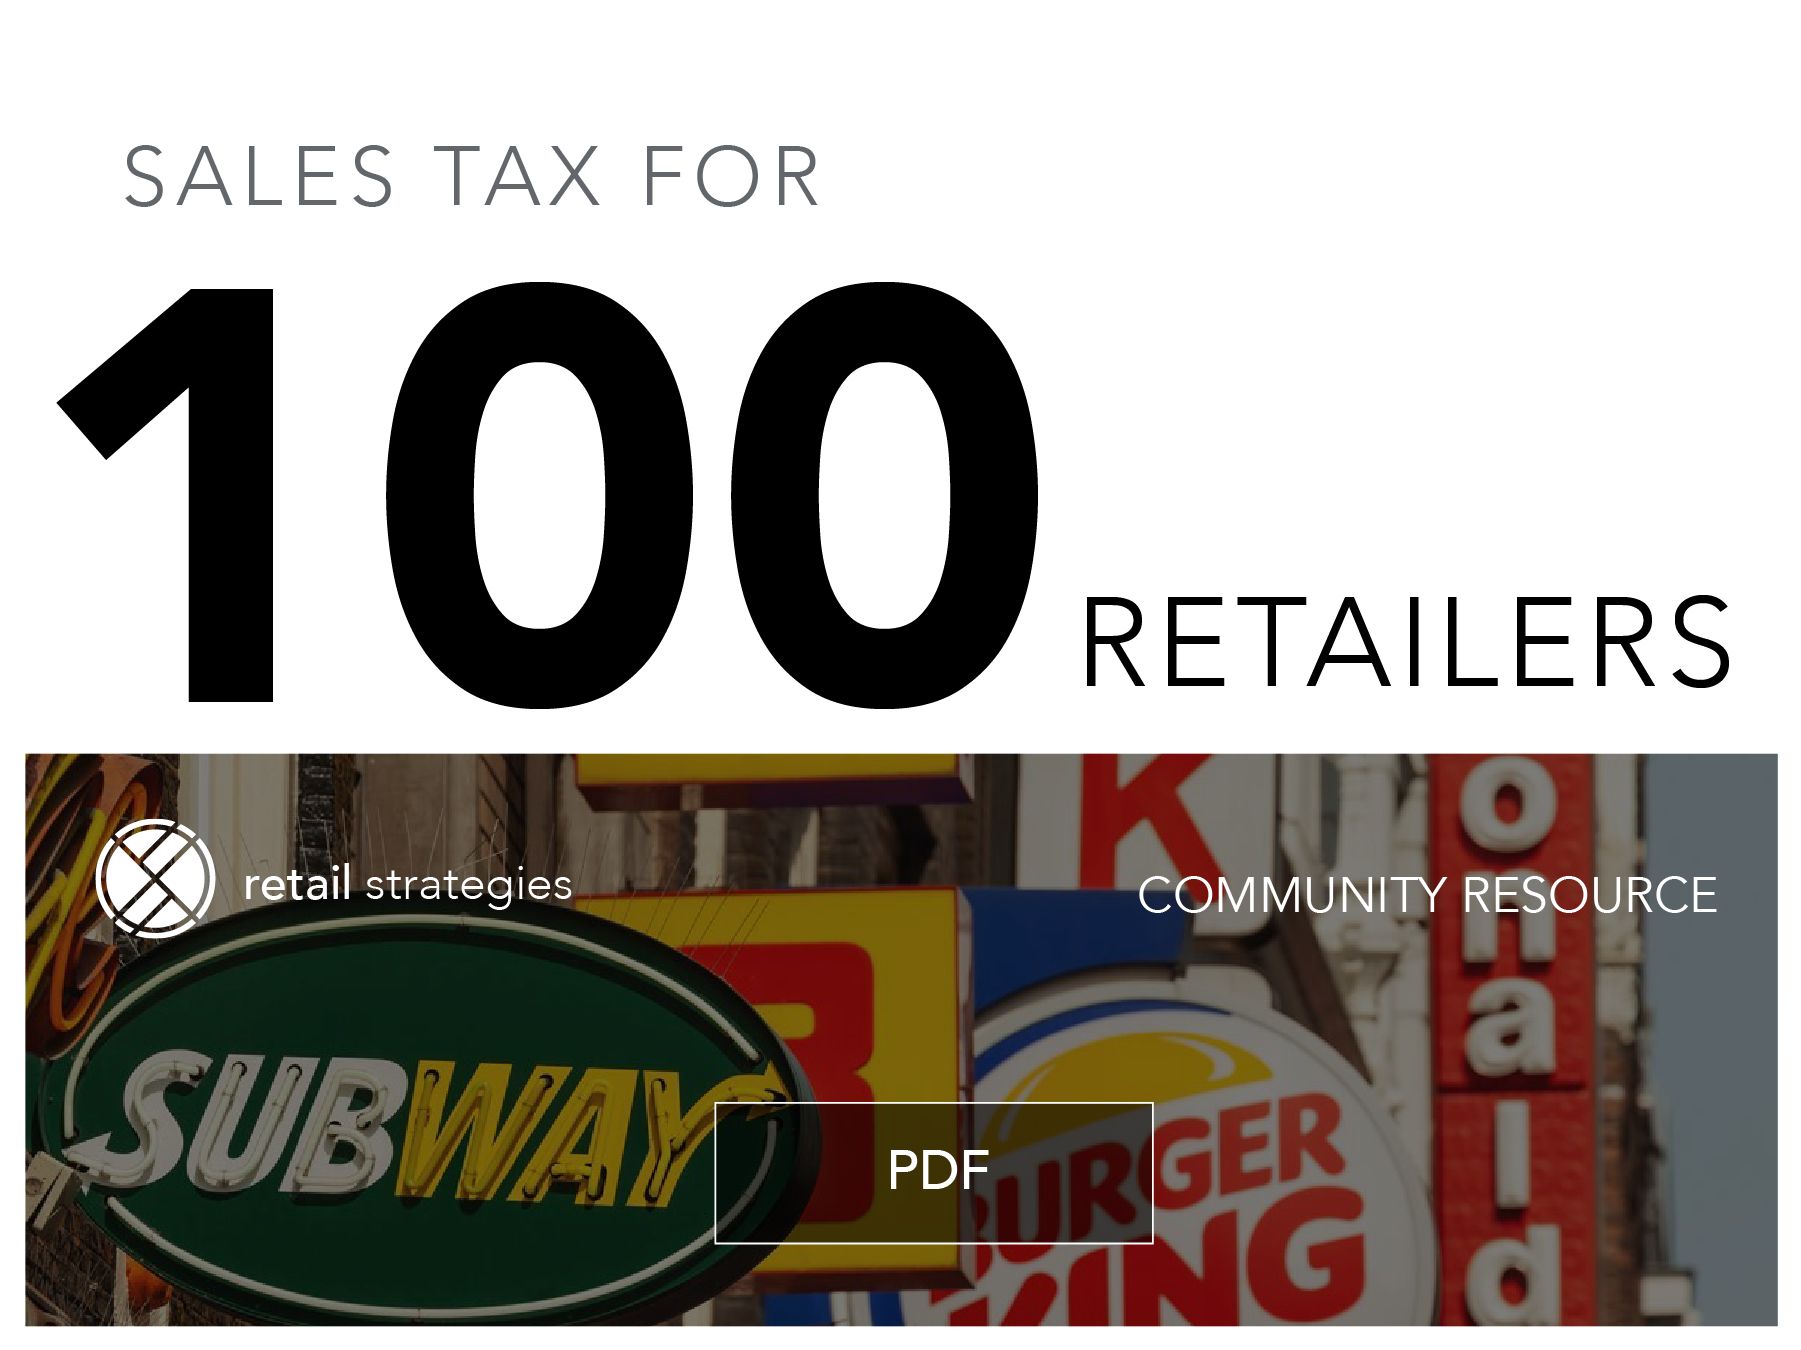 sales tax and estimated revenue for 100 retailers 2021